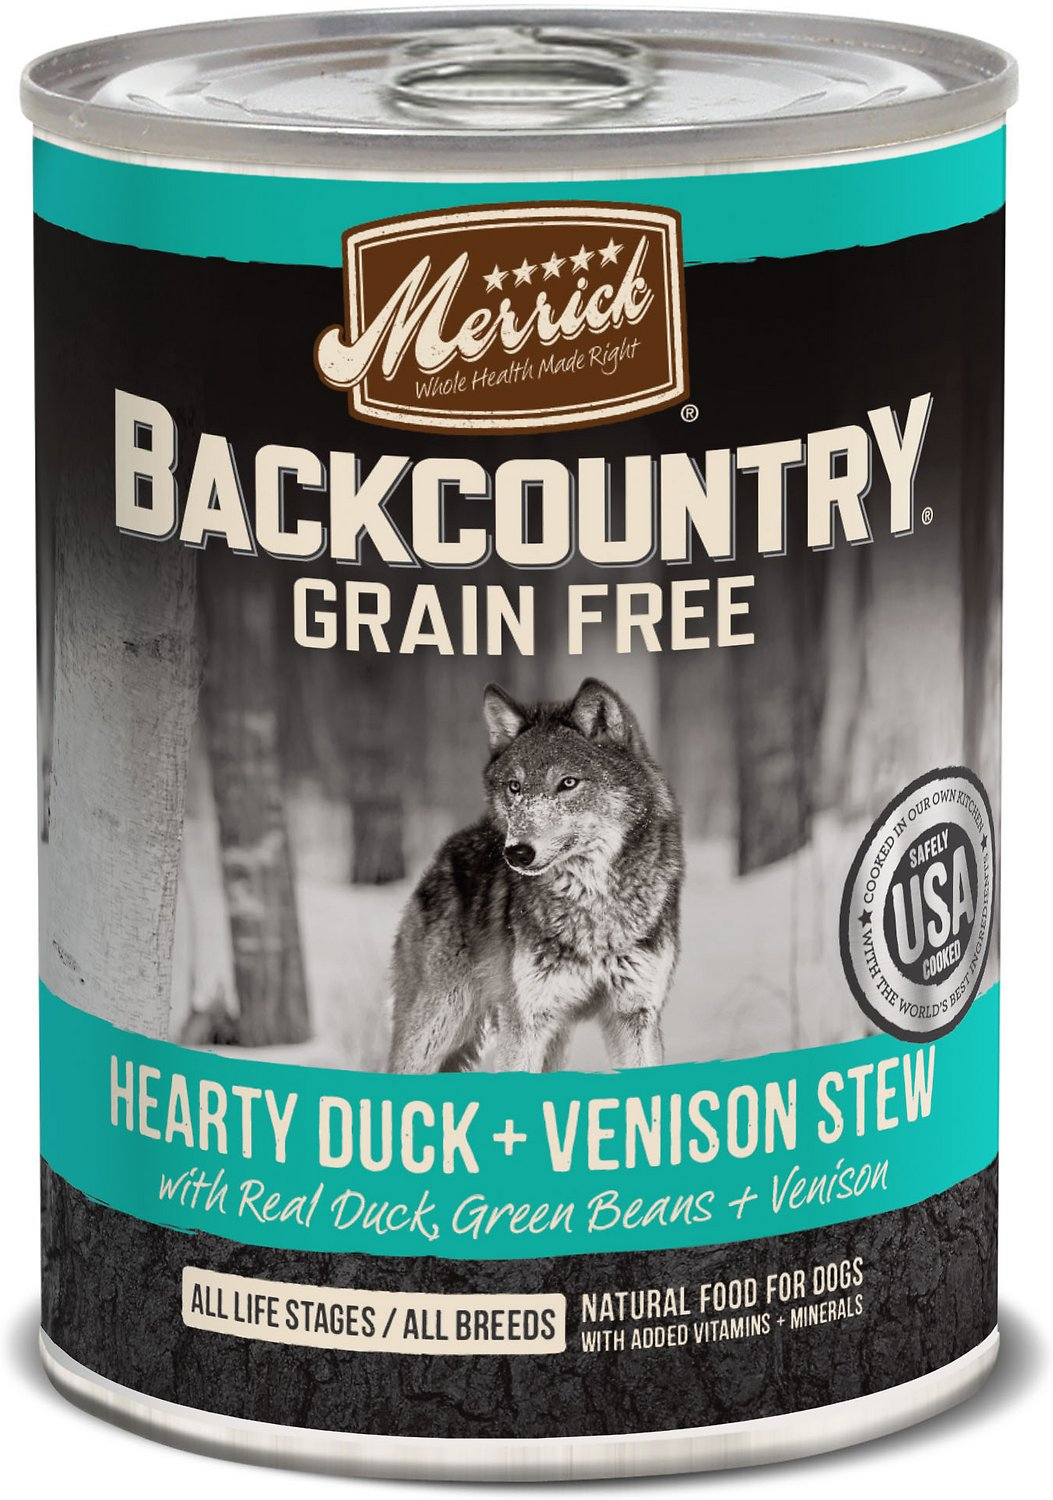 Merrick Backcountry Grain-Free Hearty Duck & Venison Stew Canned Dog Food Image